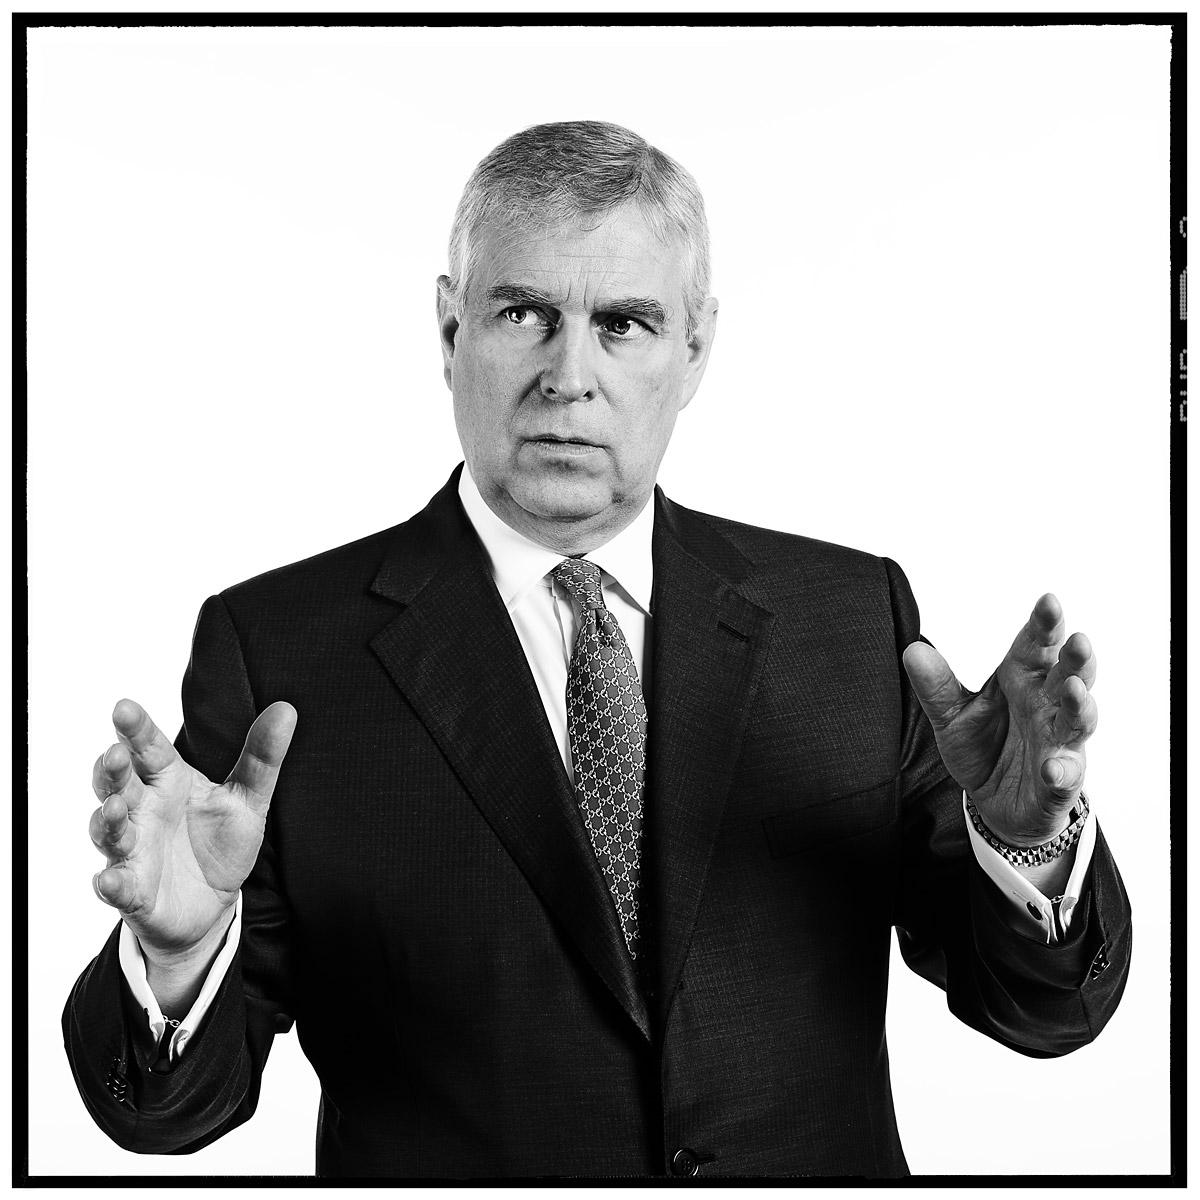 Portrait of HRH Prince Andrew by Contemporary photographer Julian Hanford